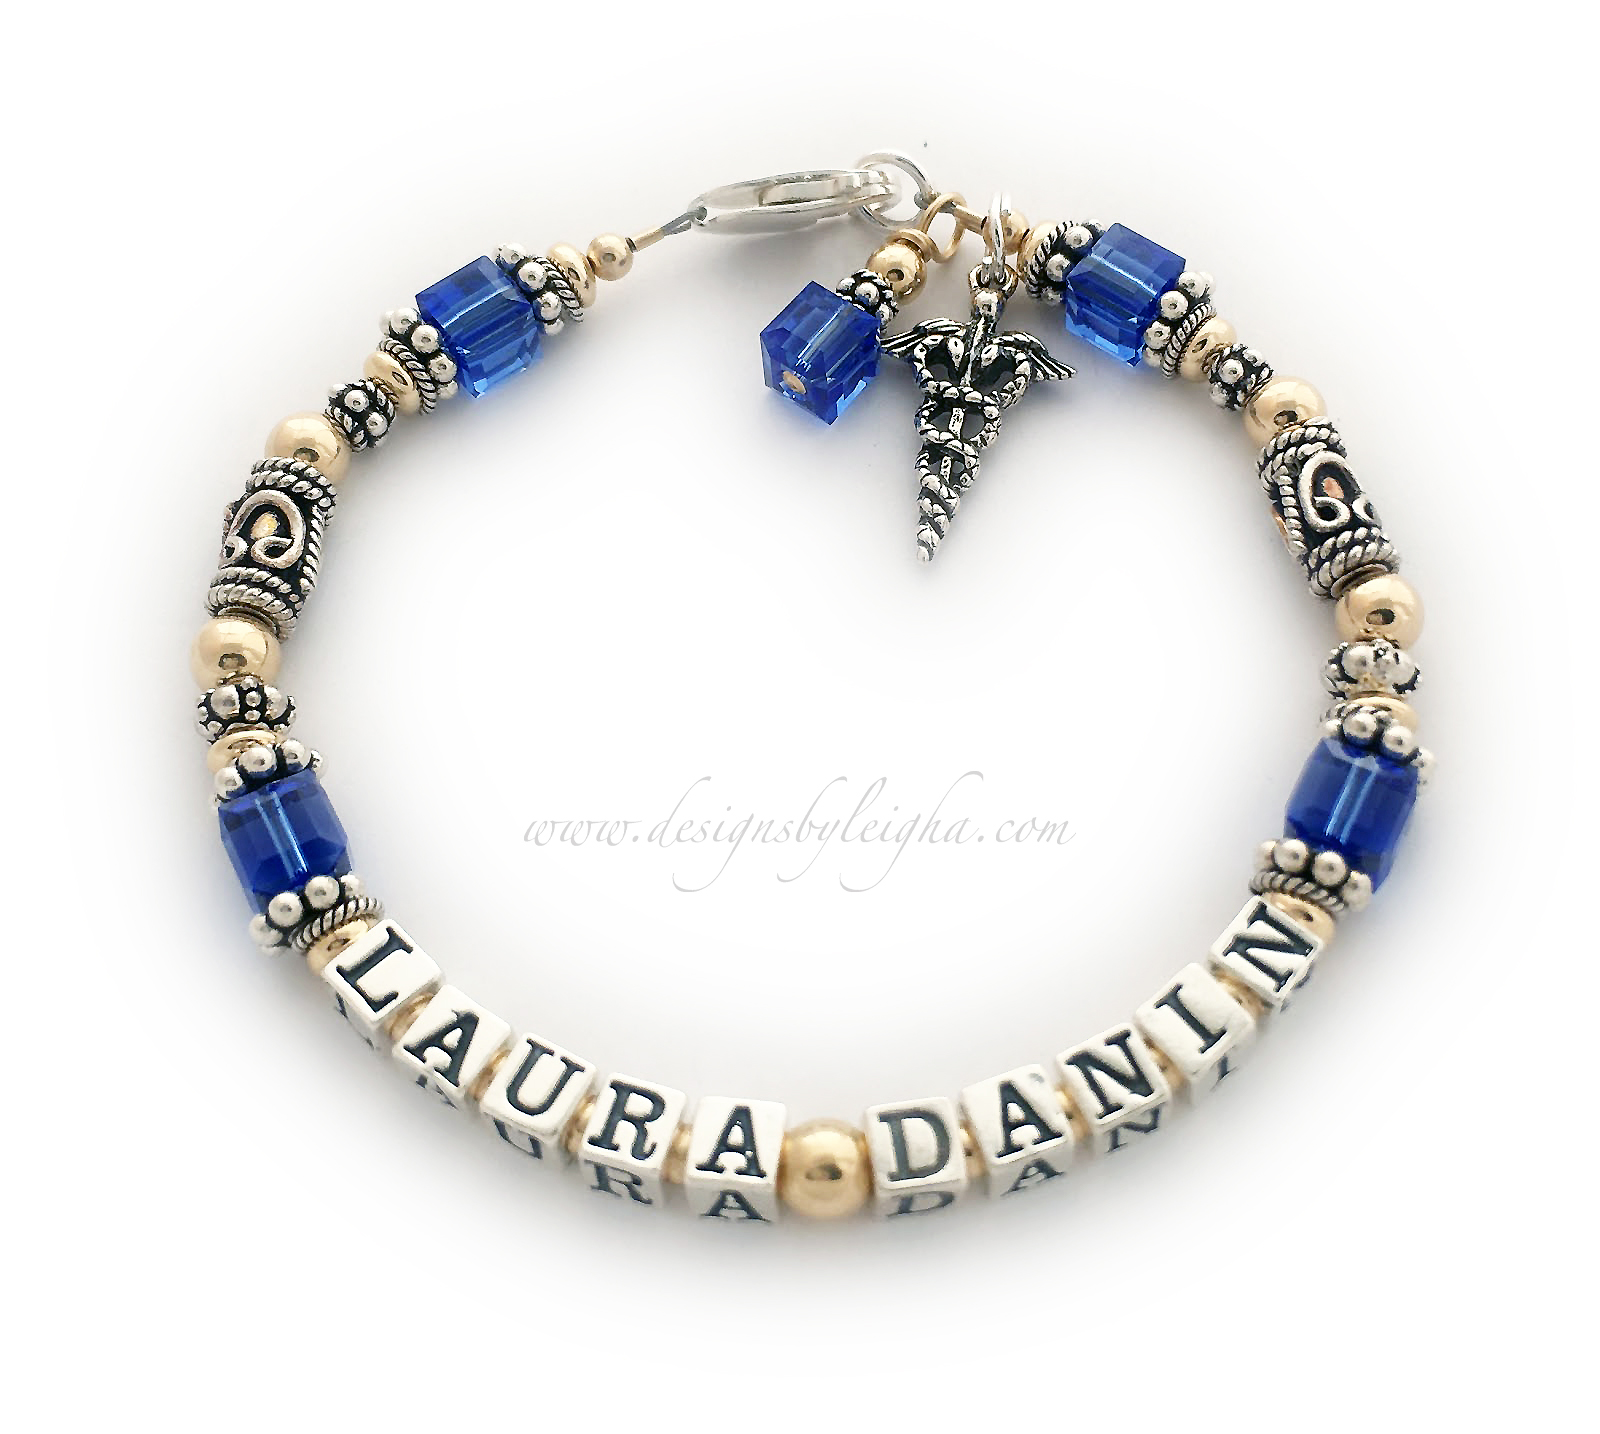 DBL-Message Bracelet 11-1string ENTER: LAURA DANIN/SEP  This bracelet has the name LAURA DANIN with a Medical Charm and September birthstone crystals and a September birthstone crystal dangle charm. Shown with a Lobster claw clasp.  Size: 7 1/2""